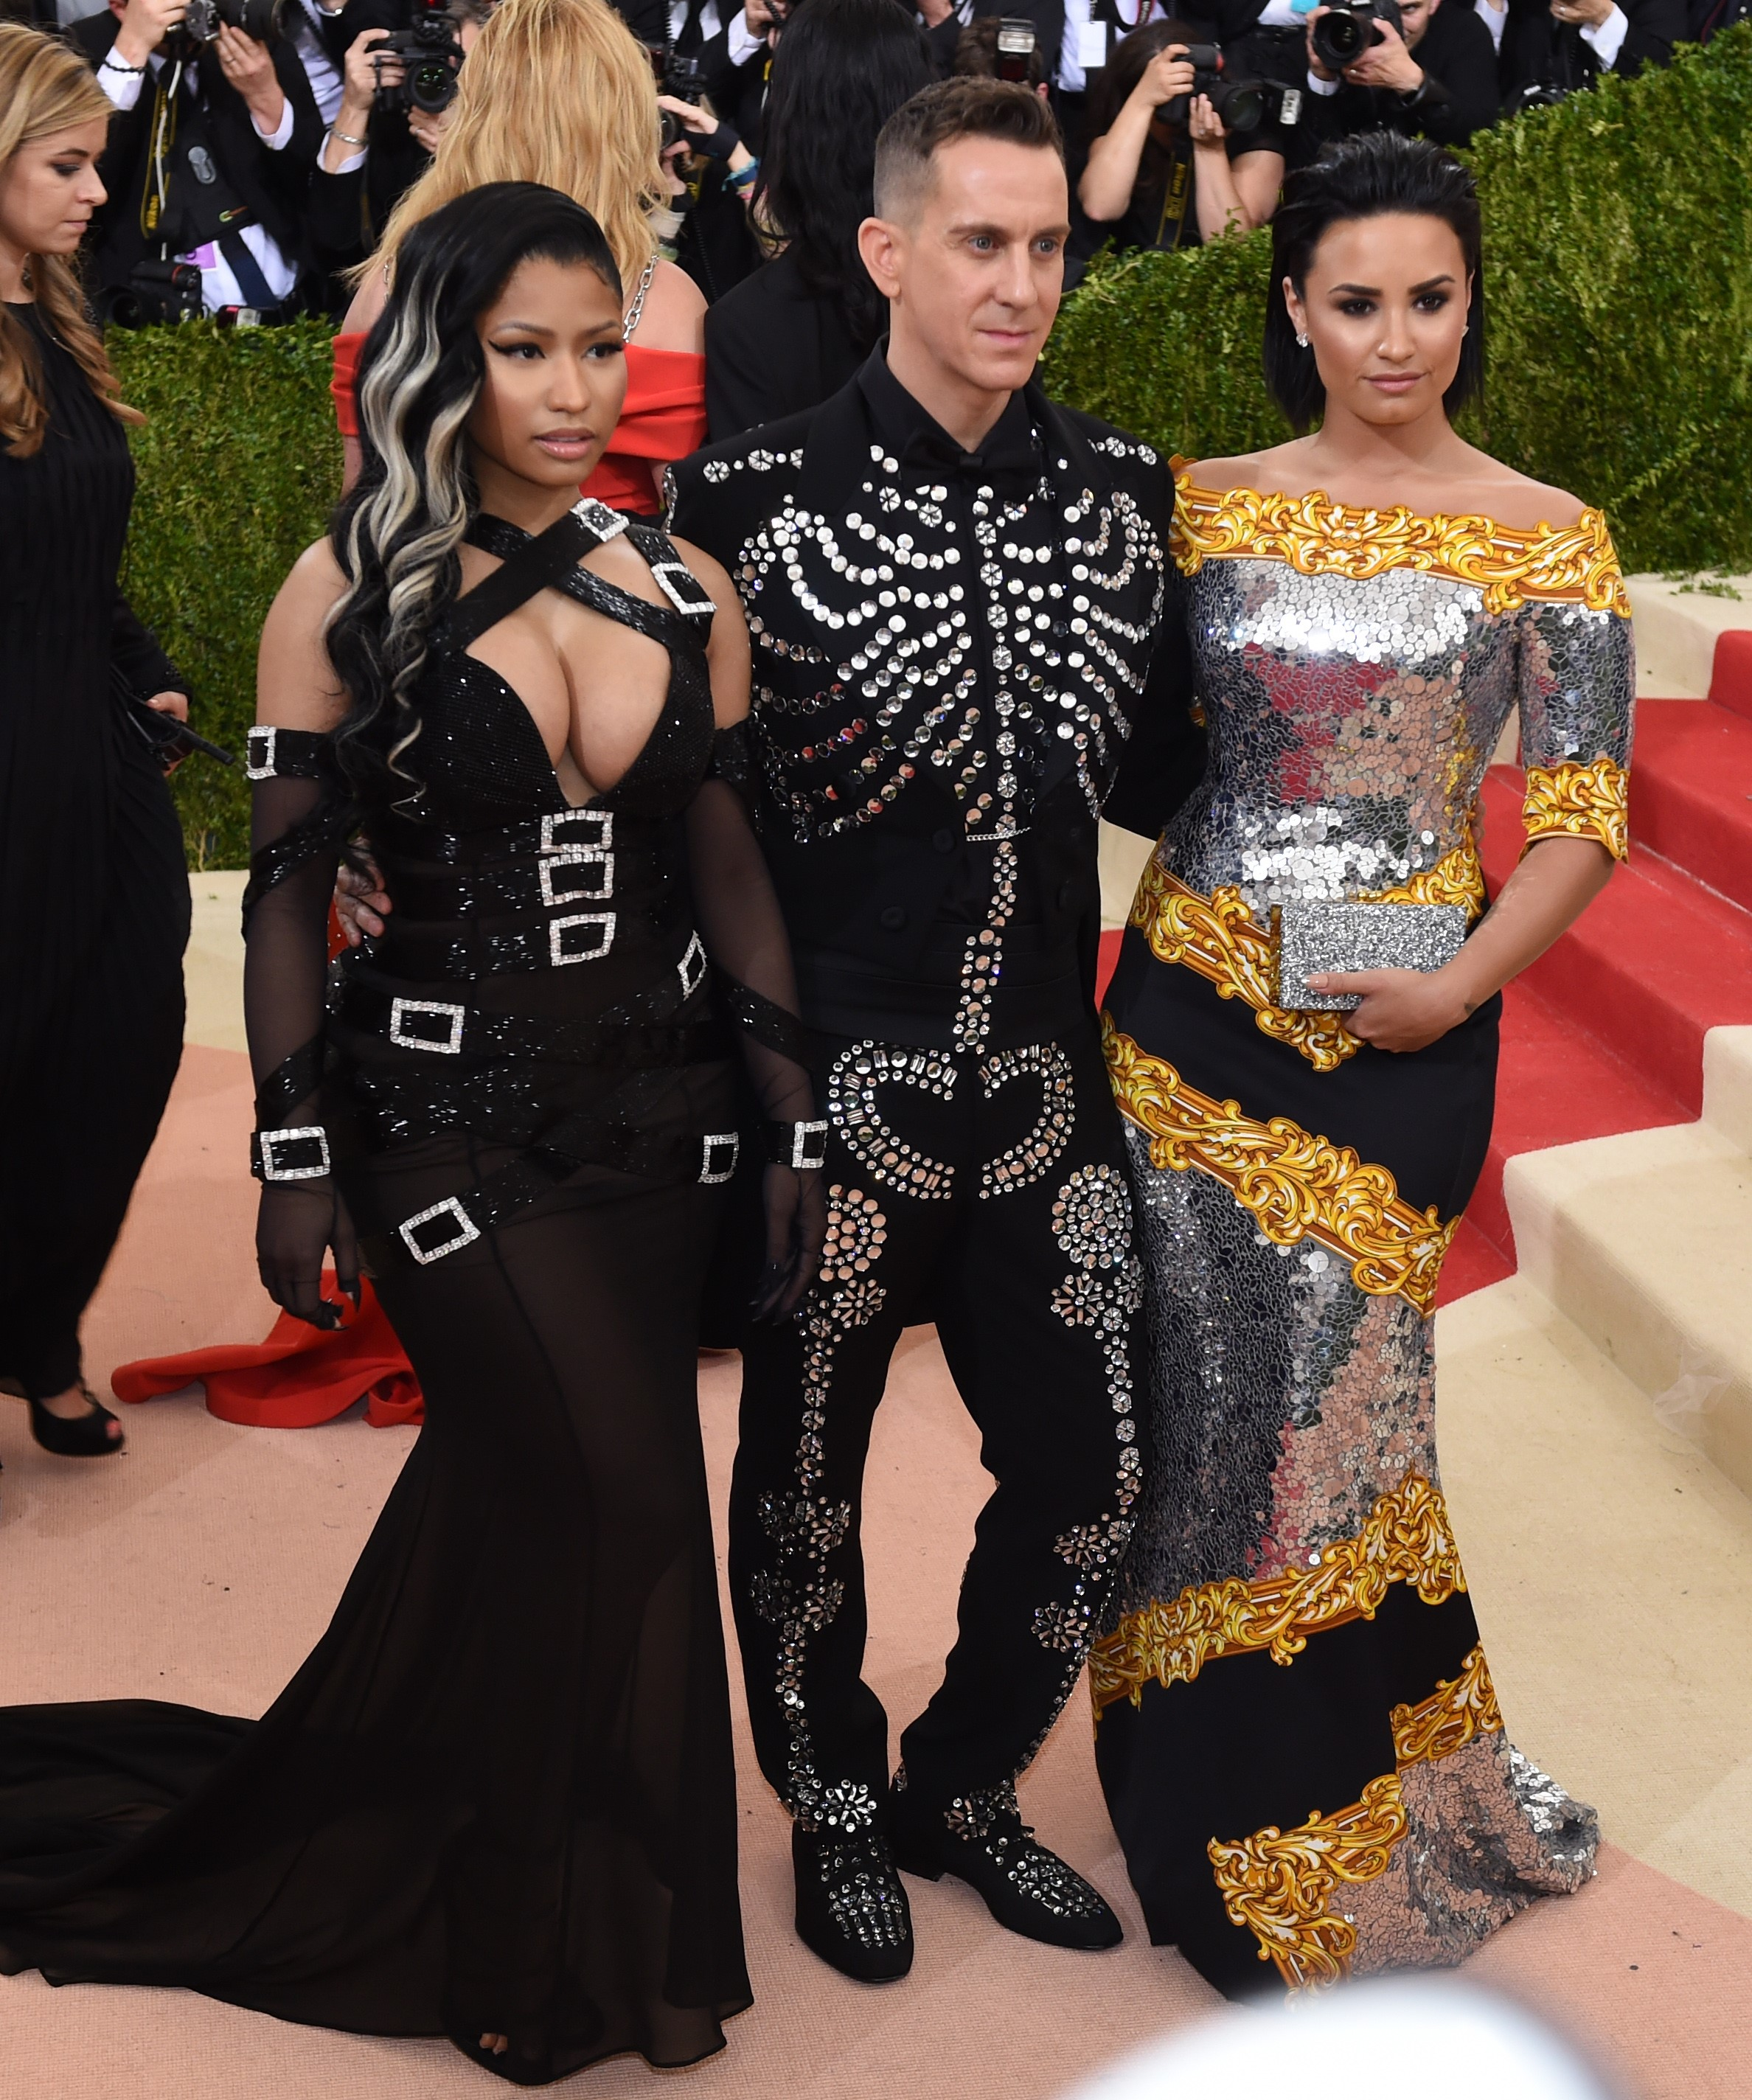 US-ARTS-FASHION-ENTERTAINMENT-GALA-MET GALA